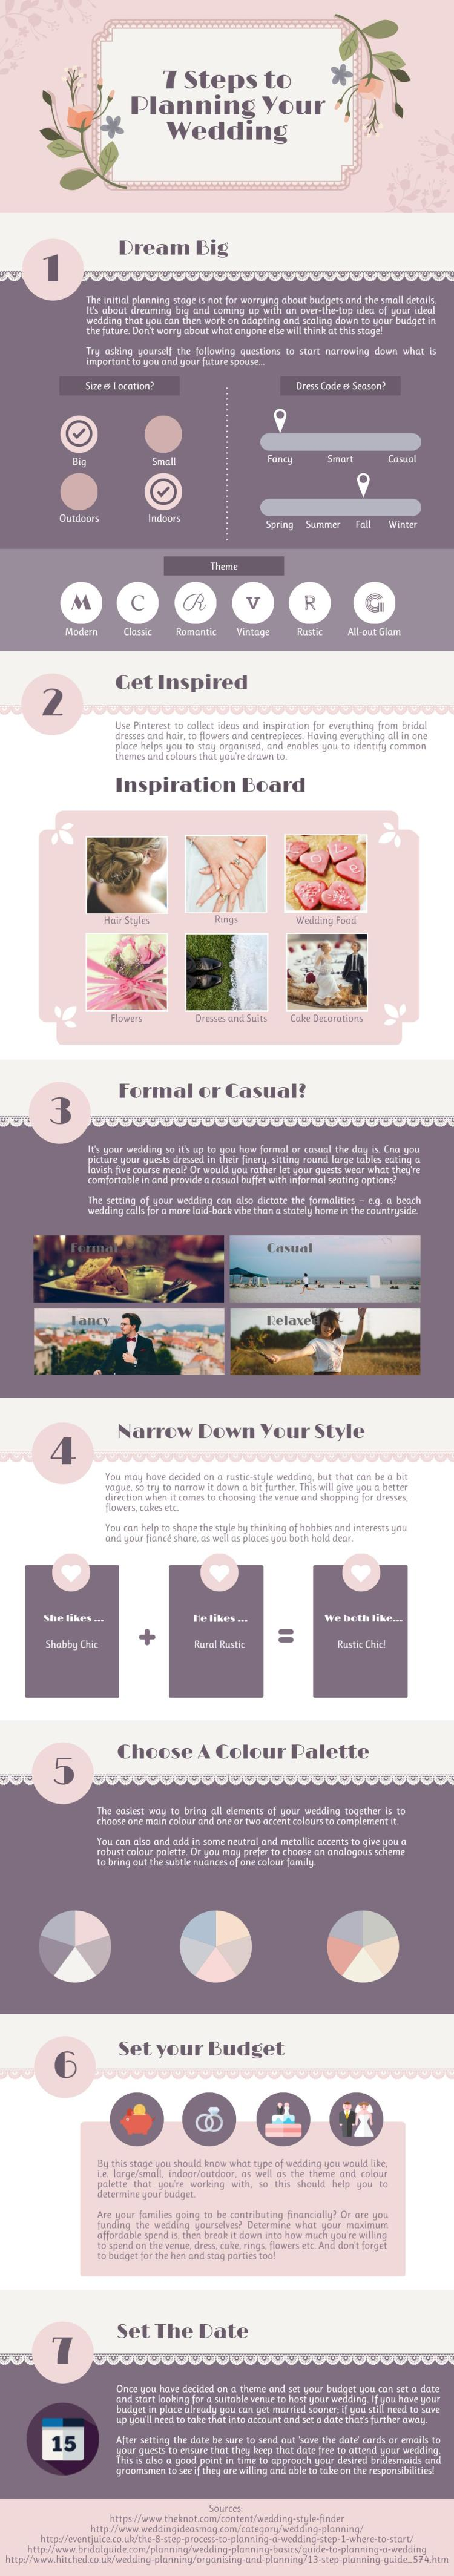 7 Steps to Planning Your Wedding [Infographic] - weddingfor1000.com